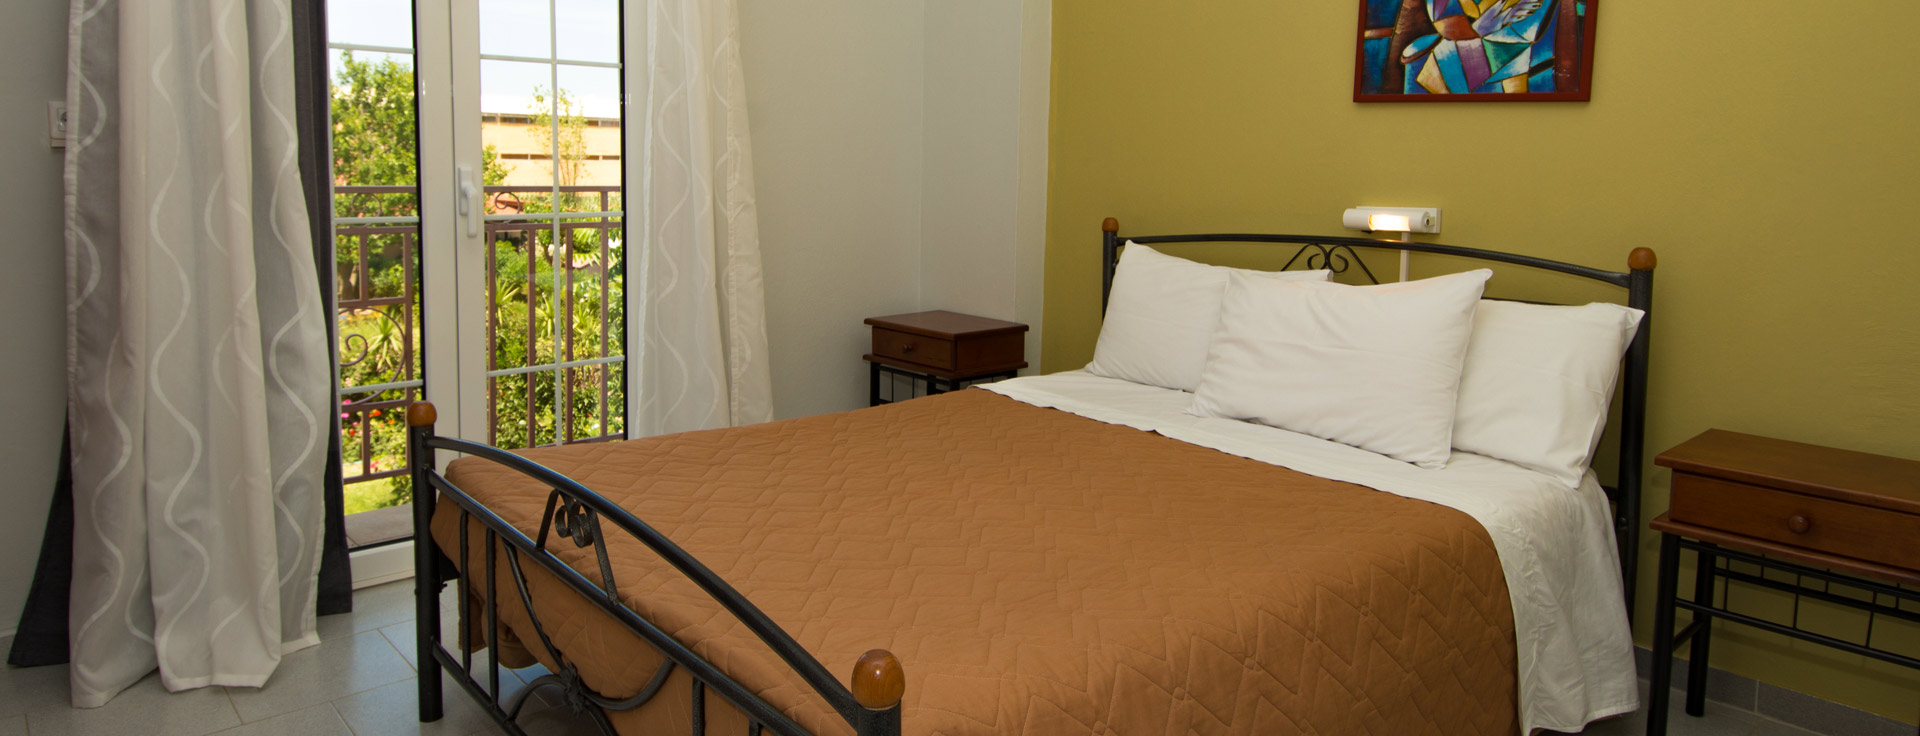 Room at Lemonia Accommodations with double bed and terrace with garden and sea view.